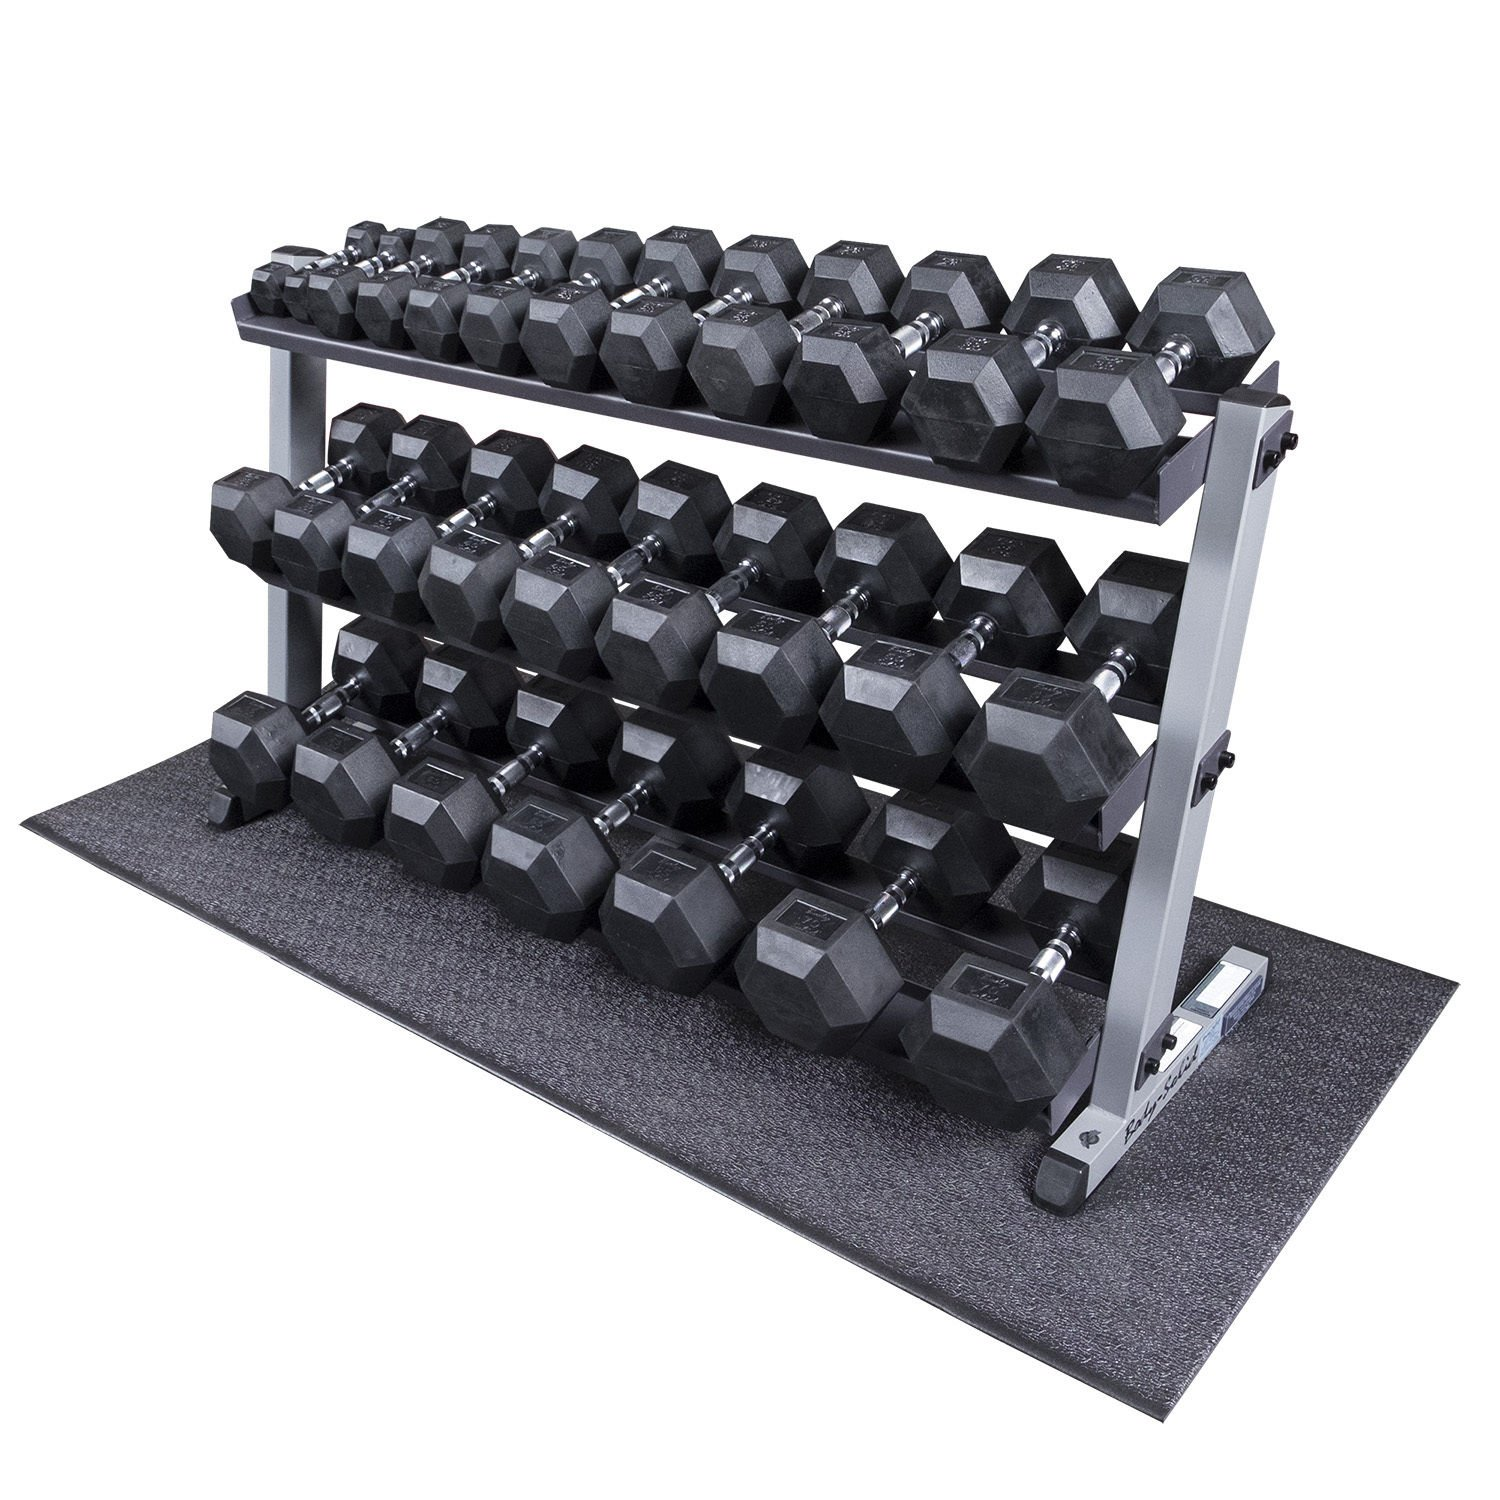 Heavy Duty Dumbbell Set with Rack 5-70 lbs Pairs by Body-Solid